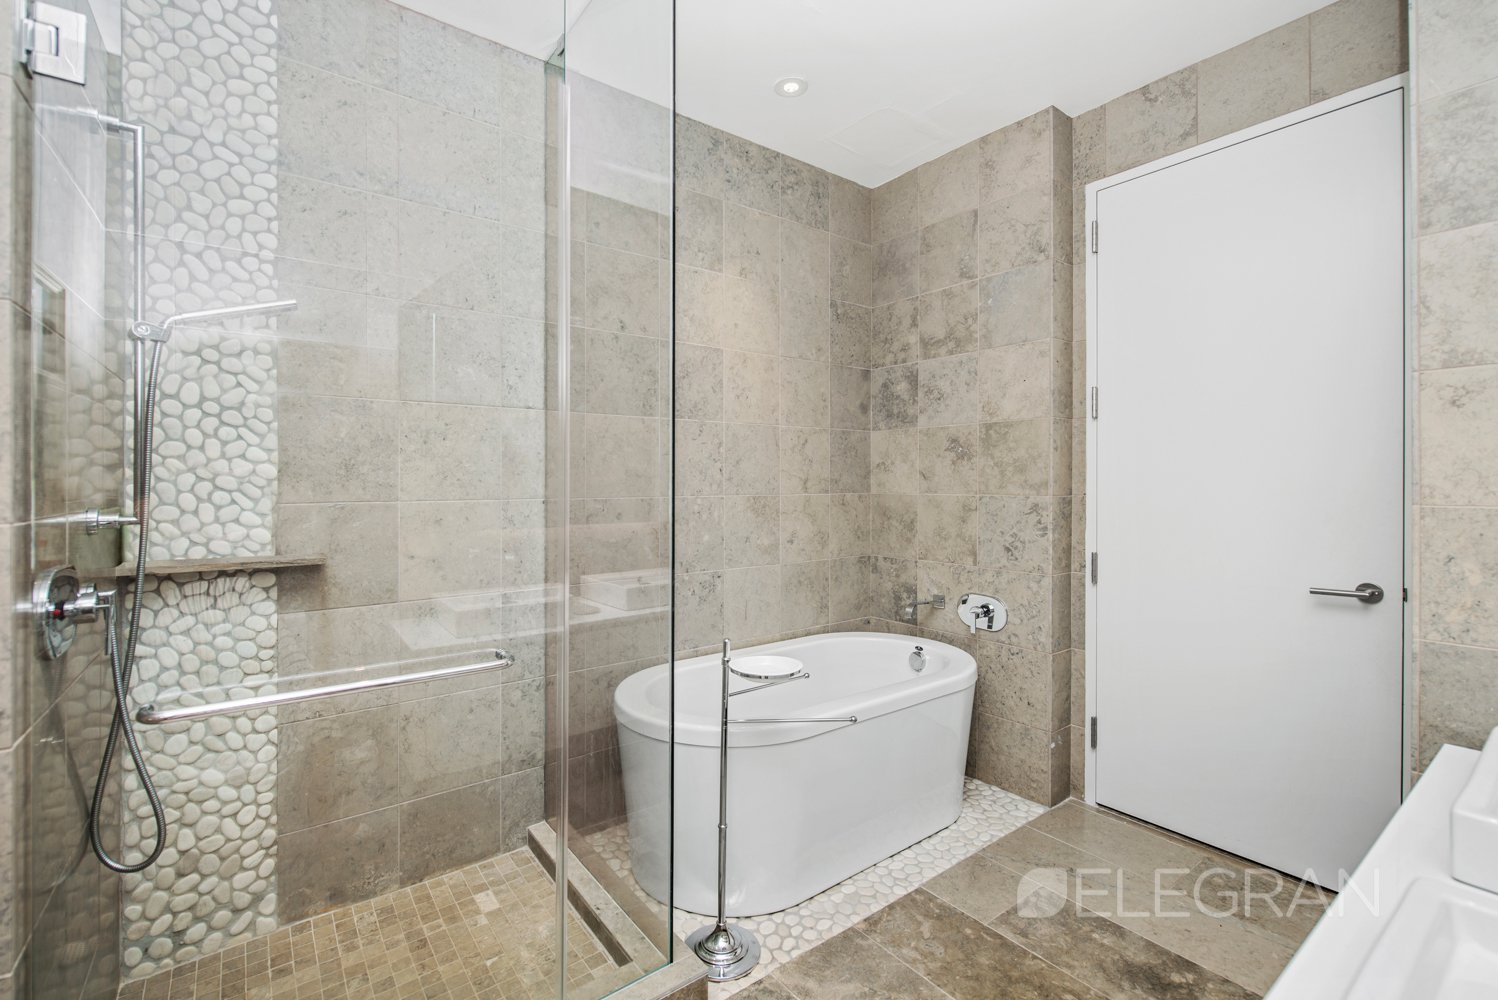 Platinum, 247 W 46TH ST | Apartments for Sale & Rent in